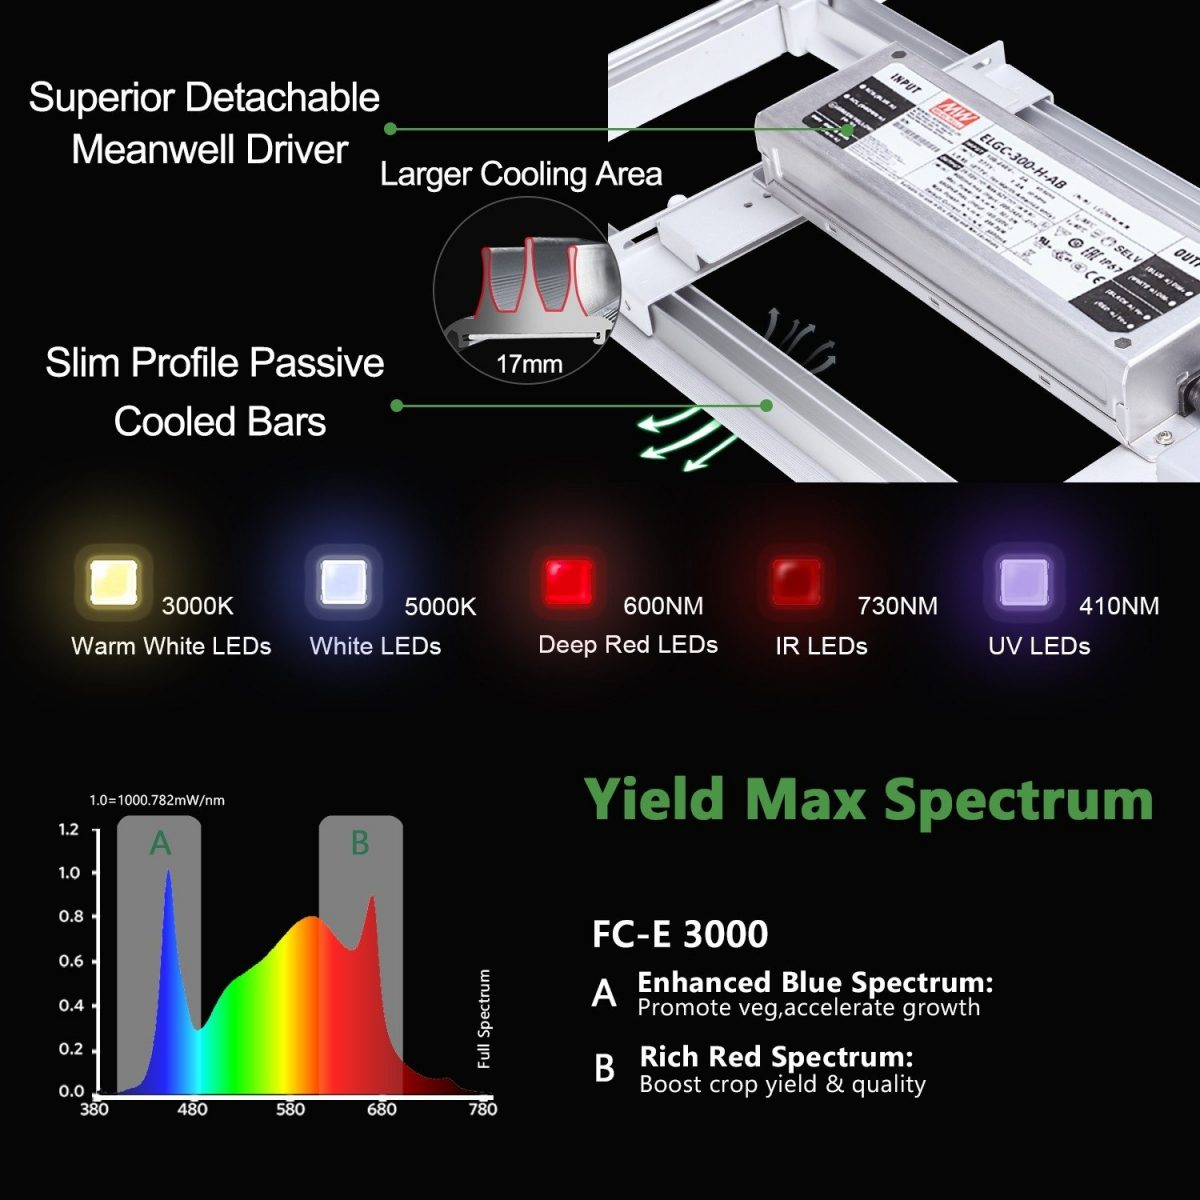 Full Spectrum with UV IR of FC-E3000 good for flower growing